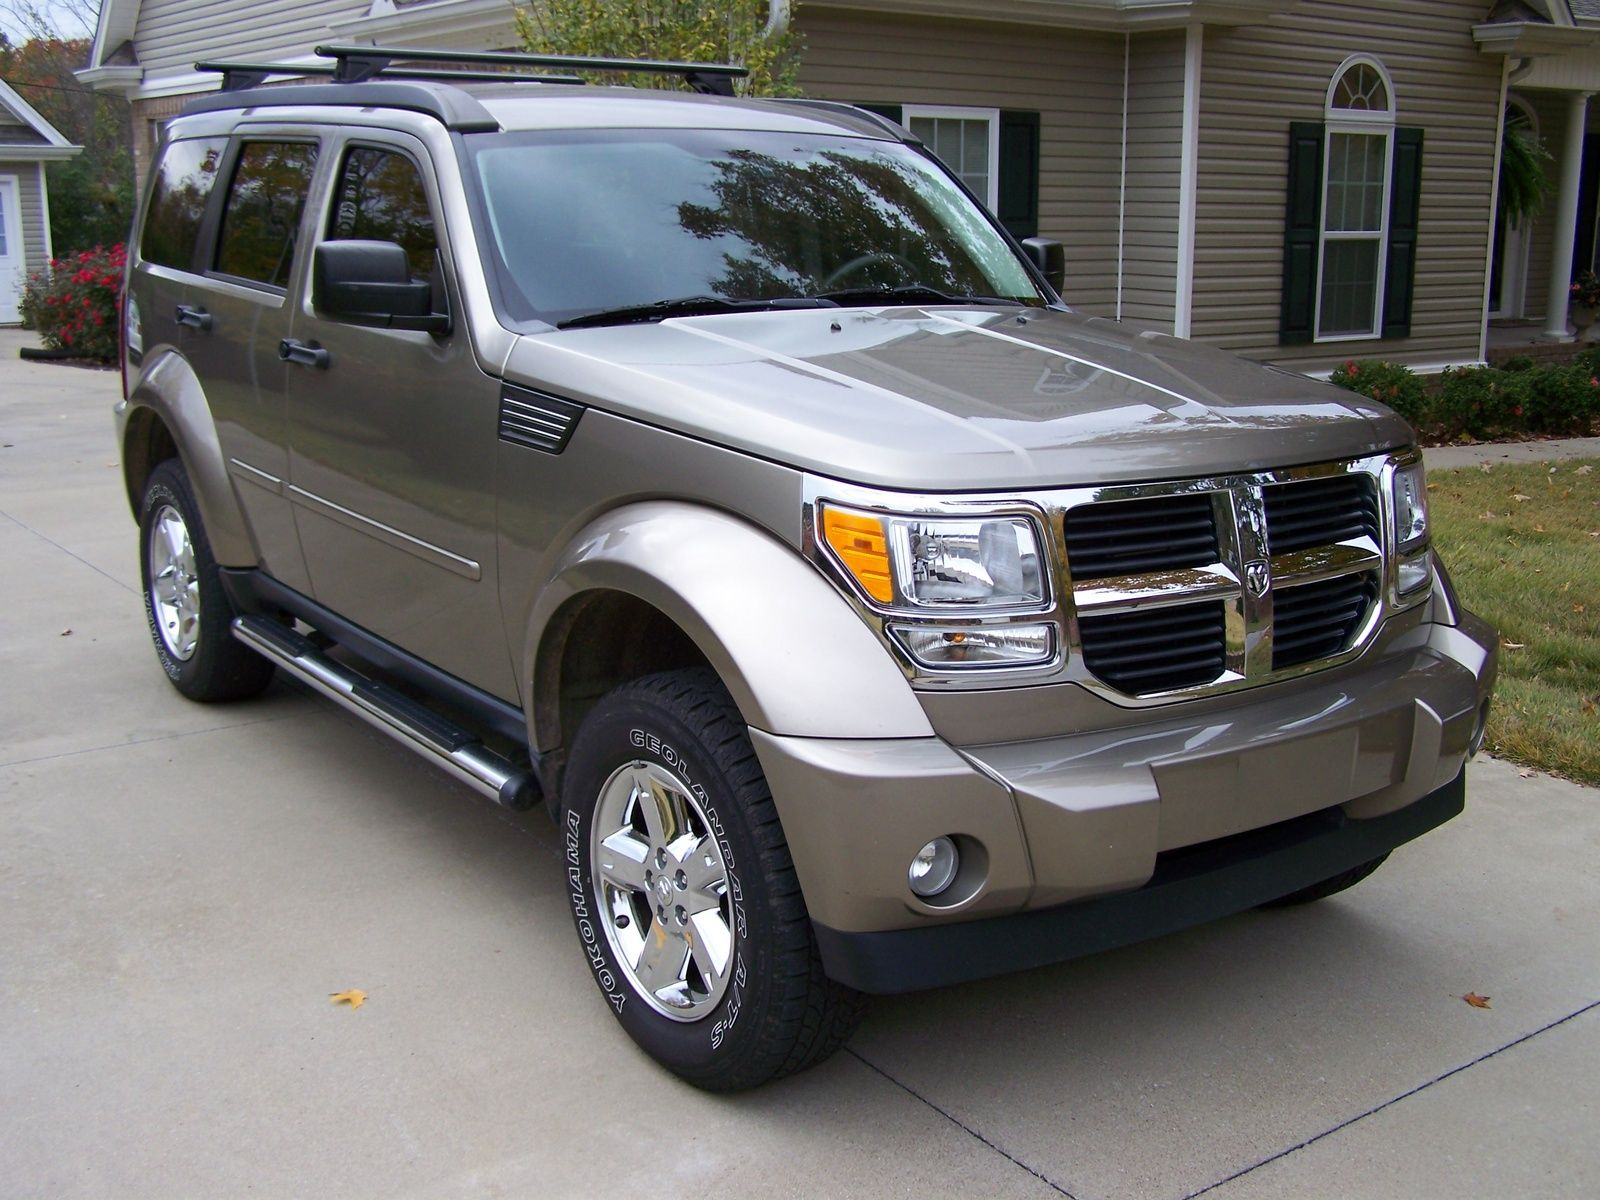 2010 Dodge Nitro 4wd Sxt Specs Colors 0 60 0 100 Quarter Mile Drag And Top Speed Review Mycarspecs United States Usa